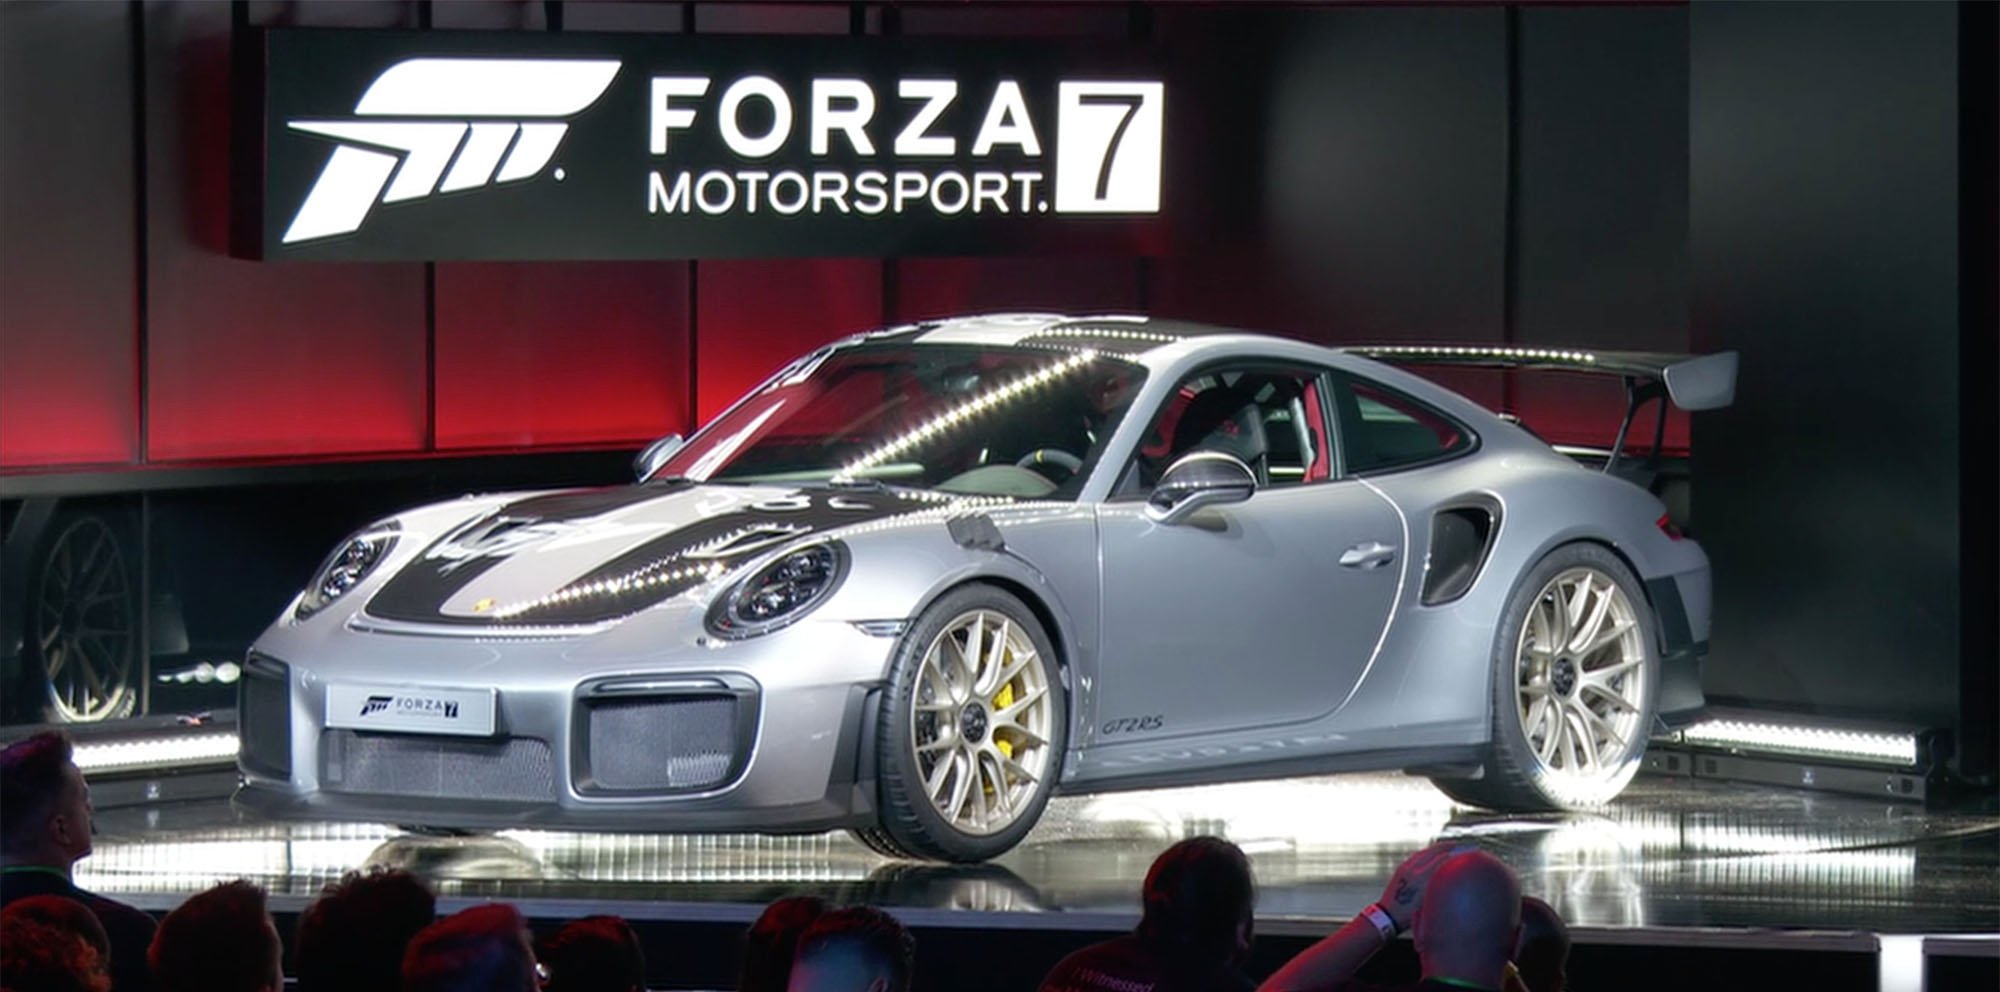 2018 Porsche 911 Gt2 Rs Revealed At E3 Photos Caradvice